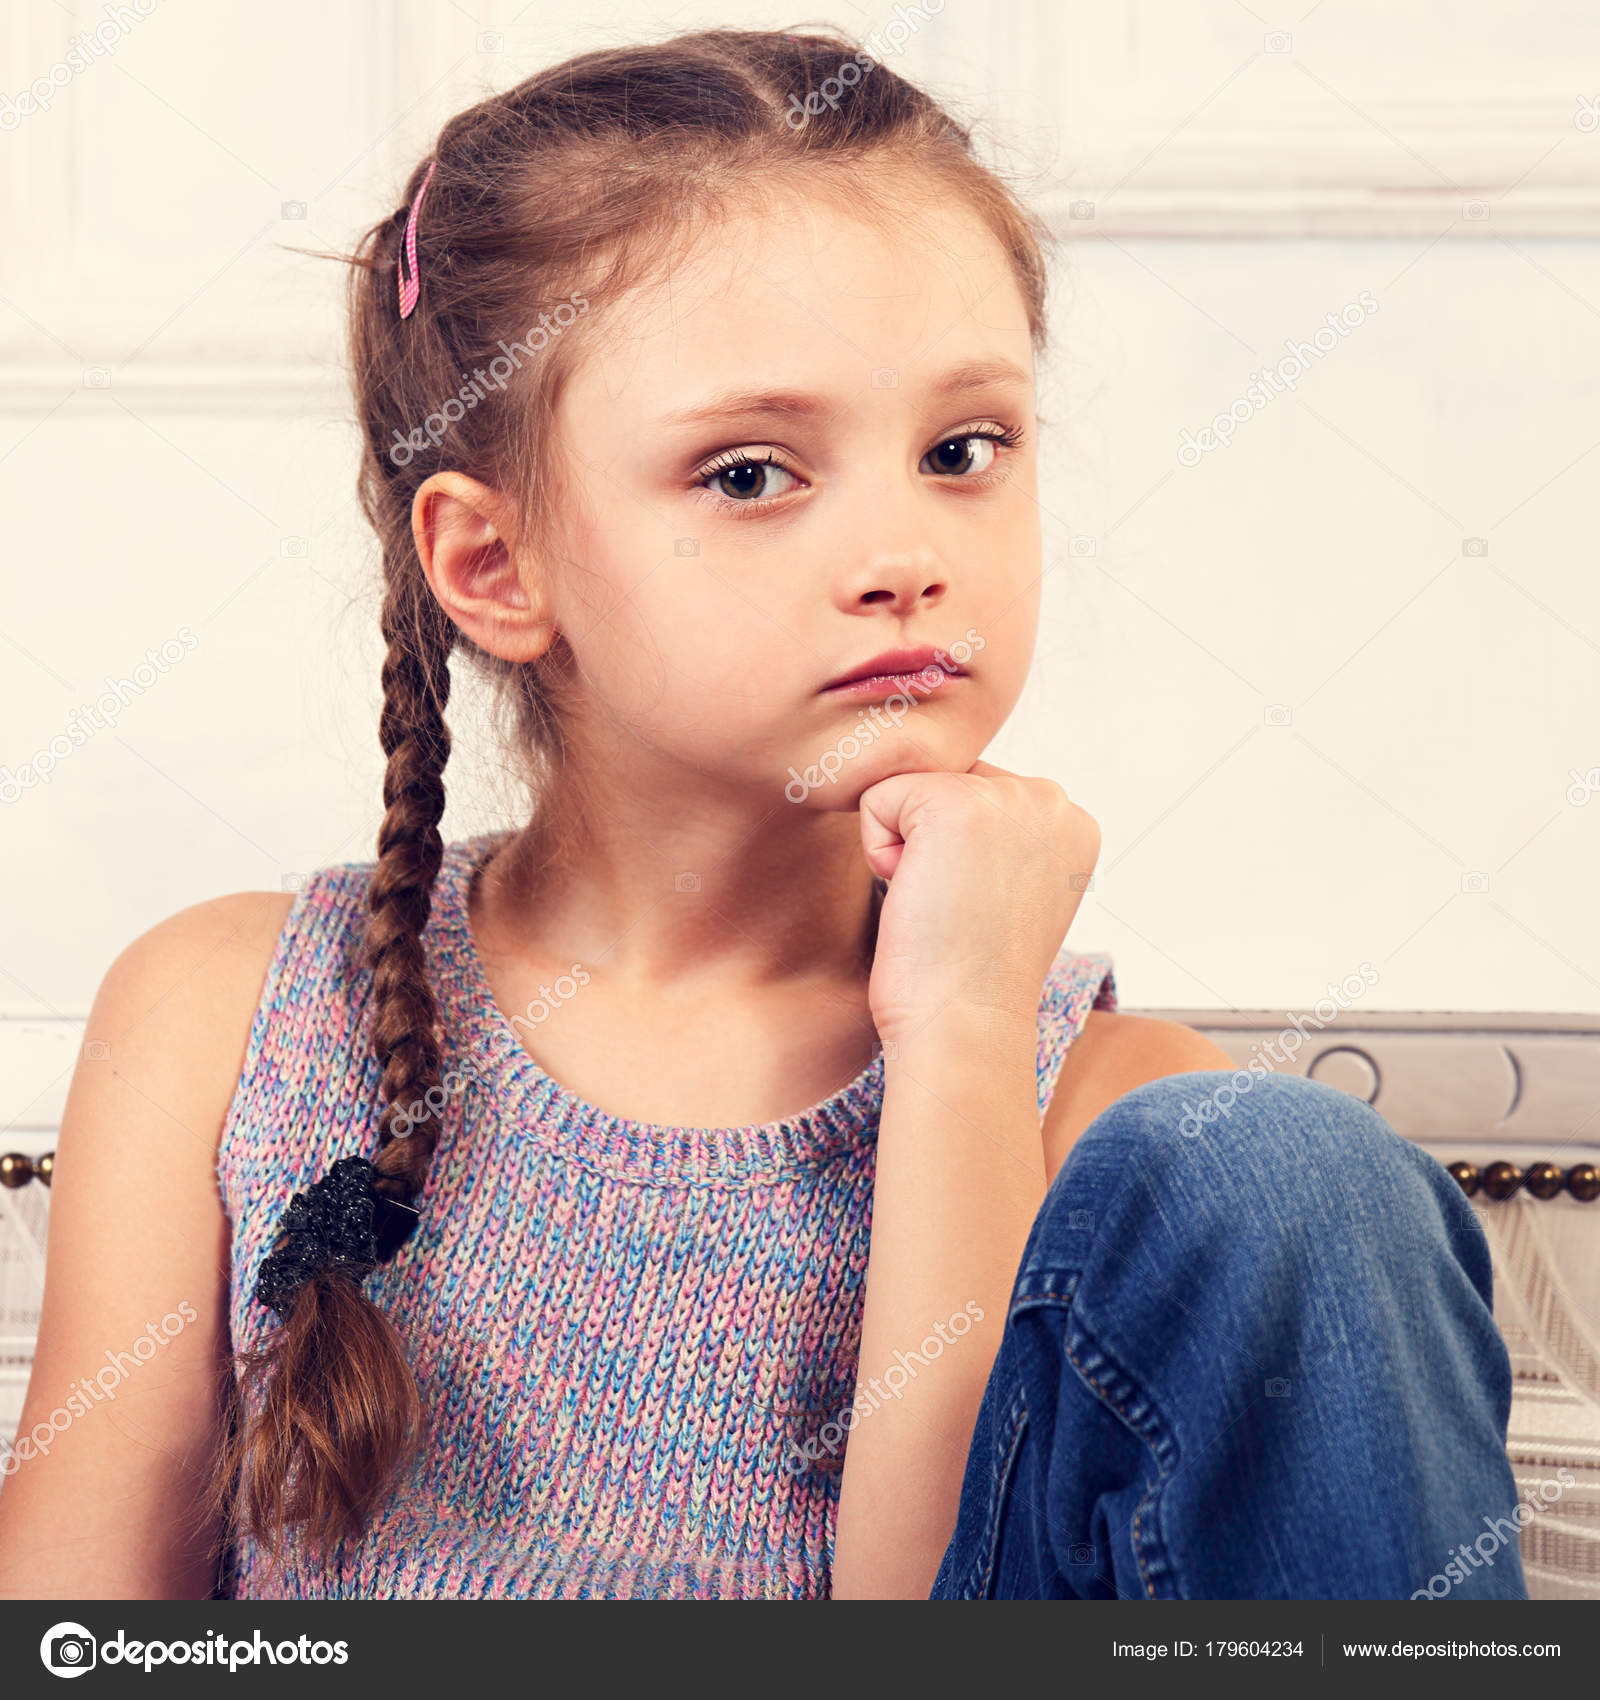 48d0b2fc5 Beautiful calm thinking unhappy kid girl sitting on the bench in blue jeans  and fashion blouse looking serious. Studio toned closeup portrait — Photo  by ...